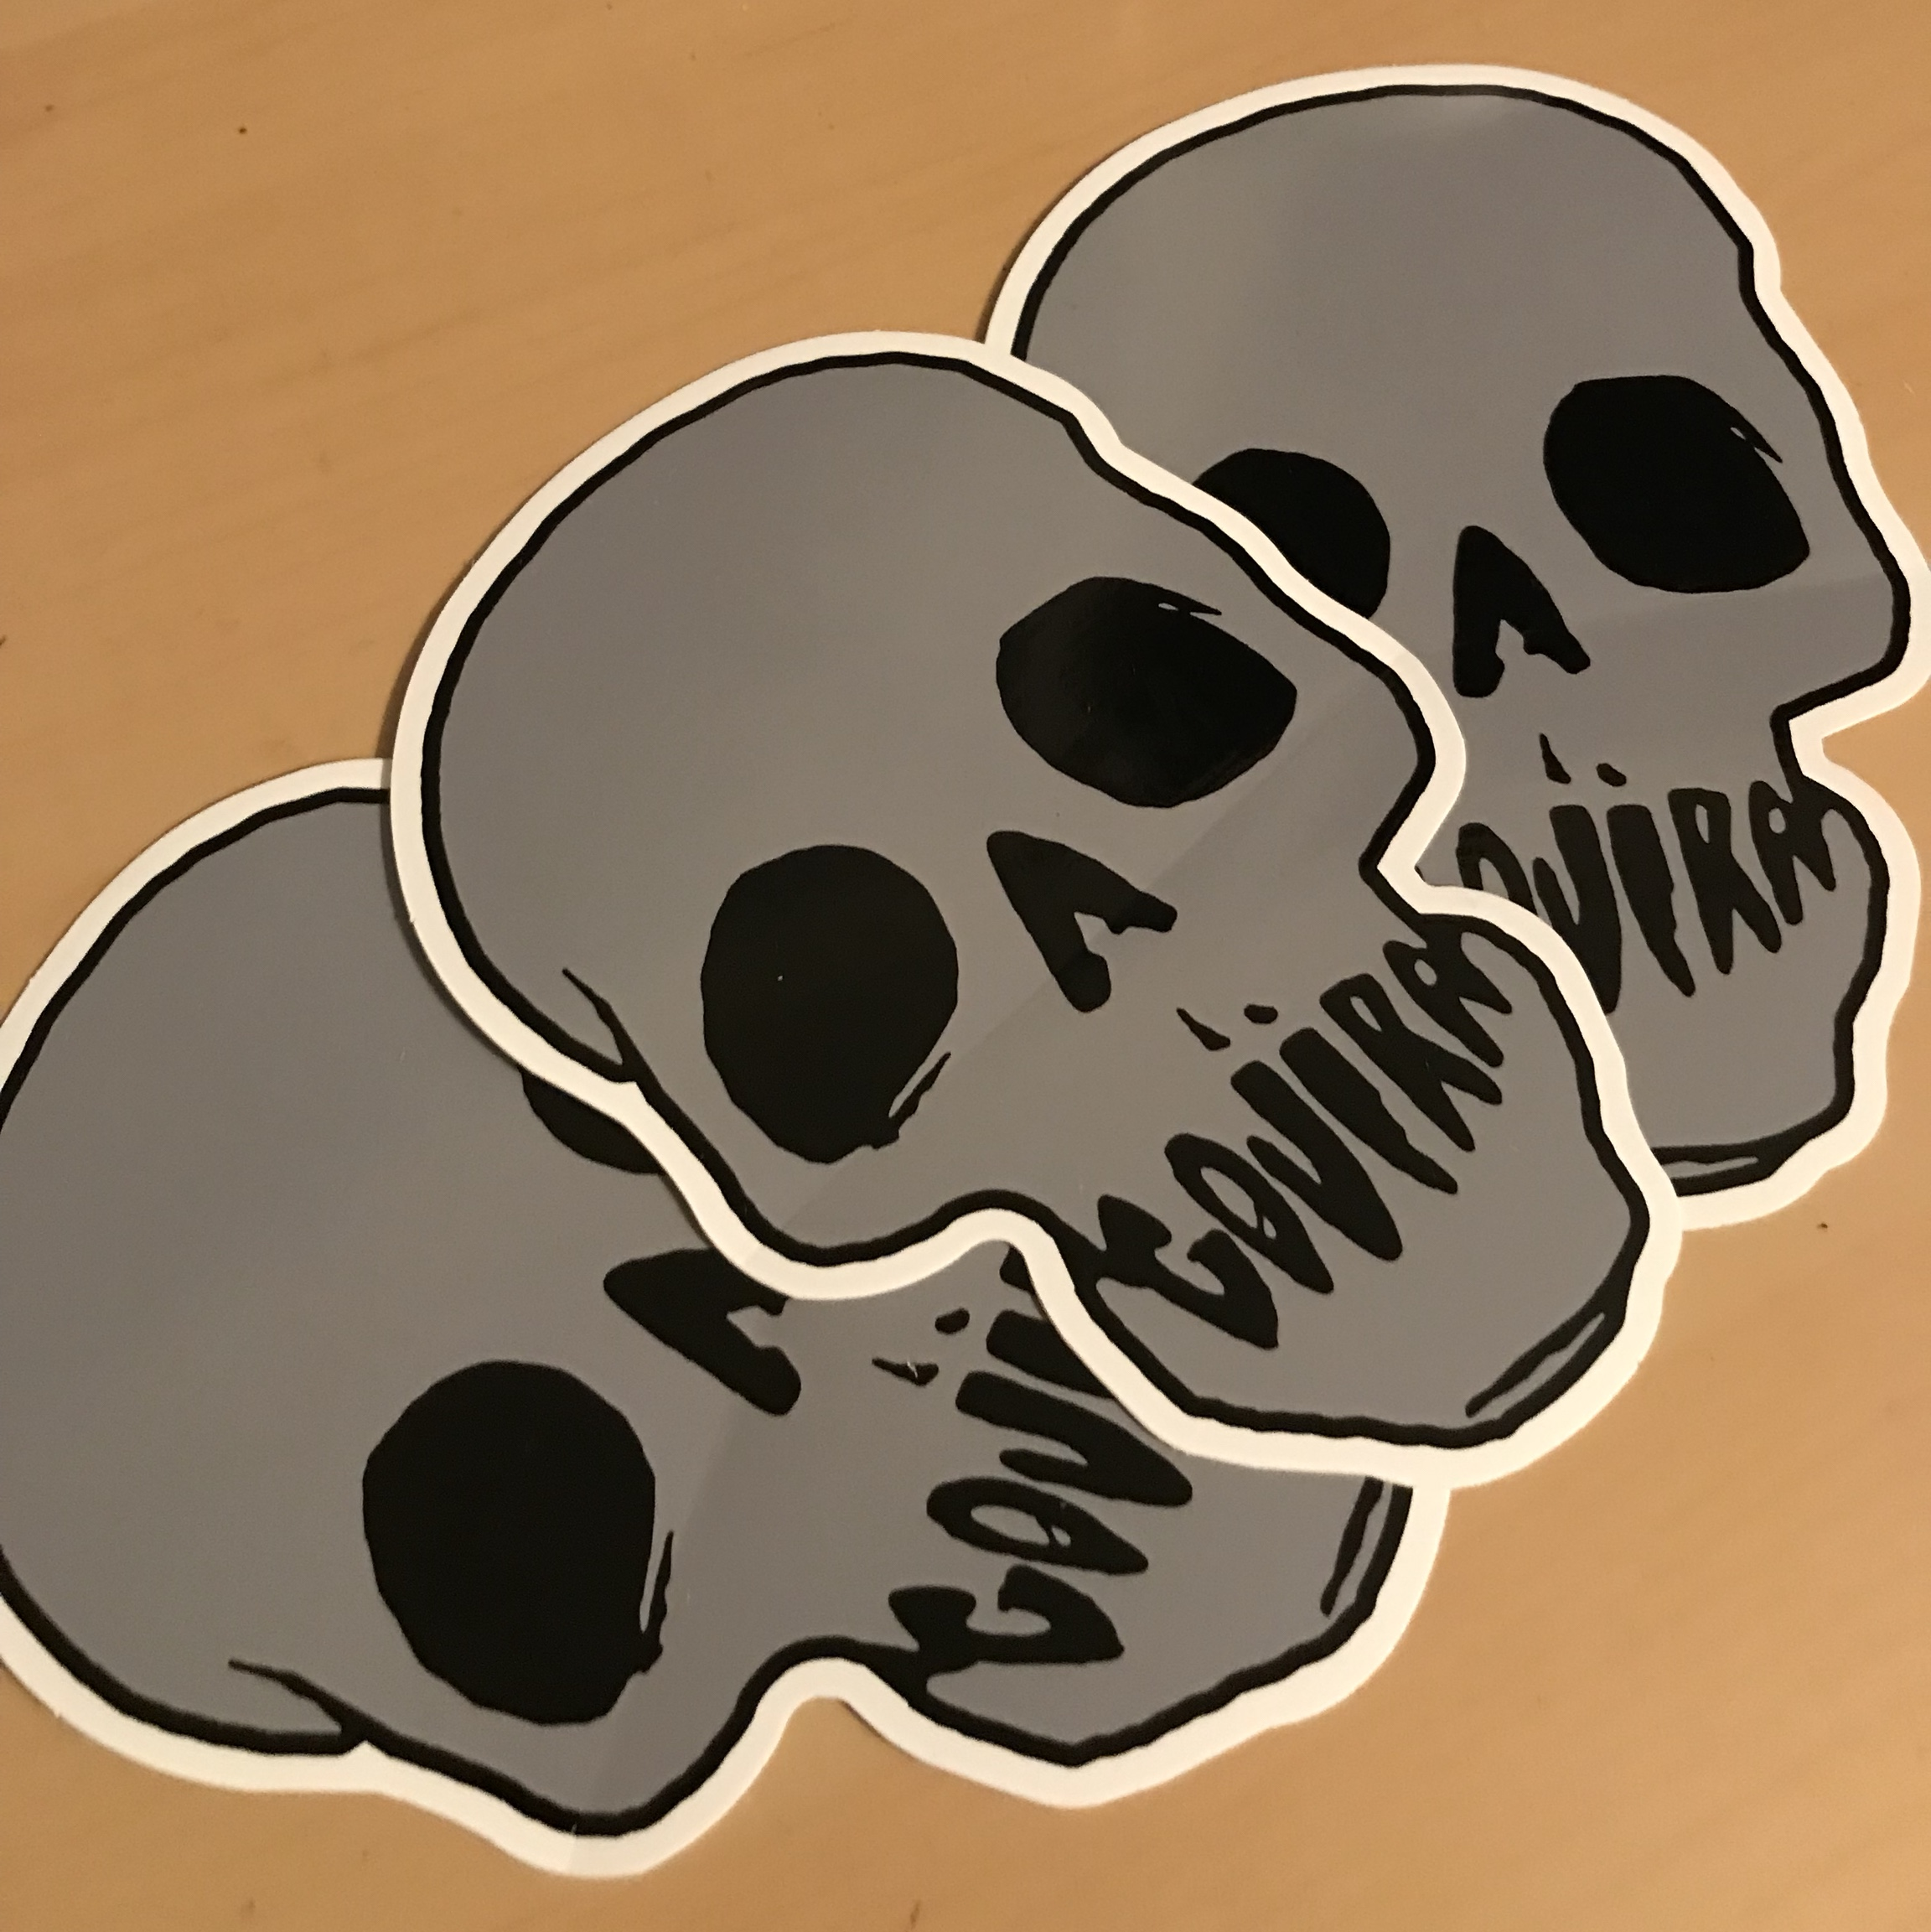 Gojira Gray Skull Sticker $2 For 3 Shipping Is Free - Depop